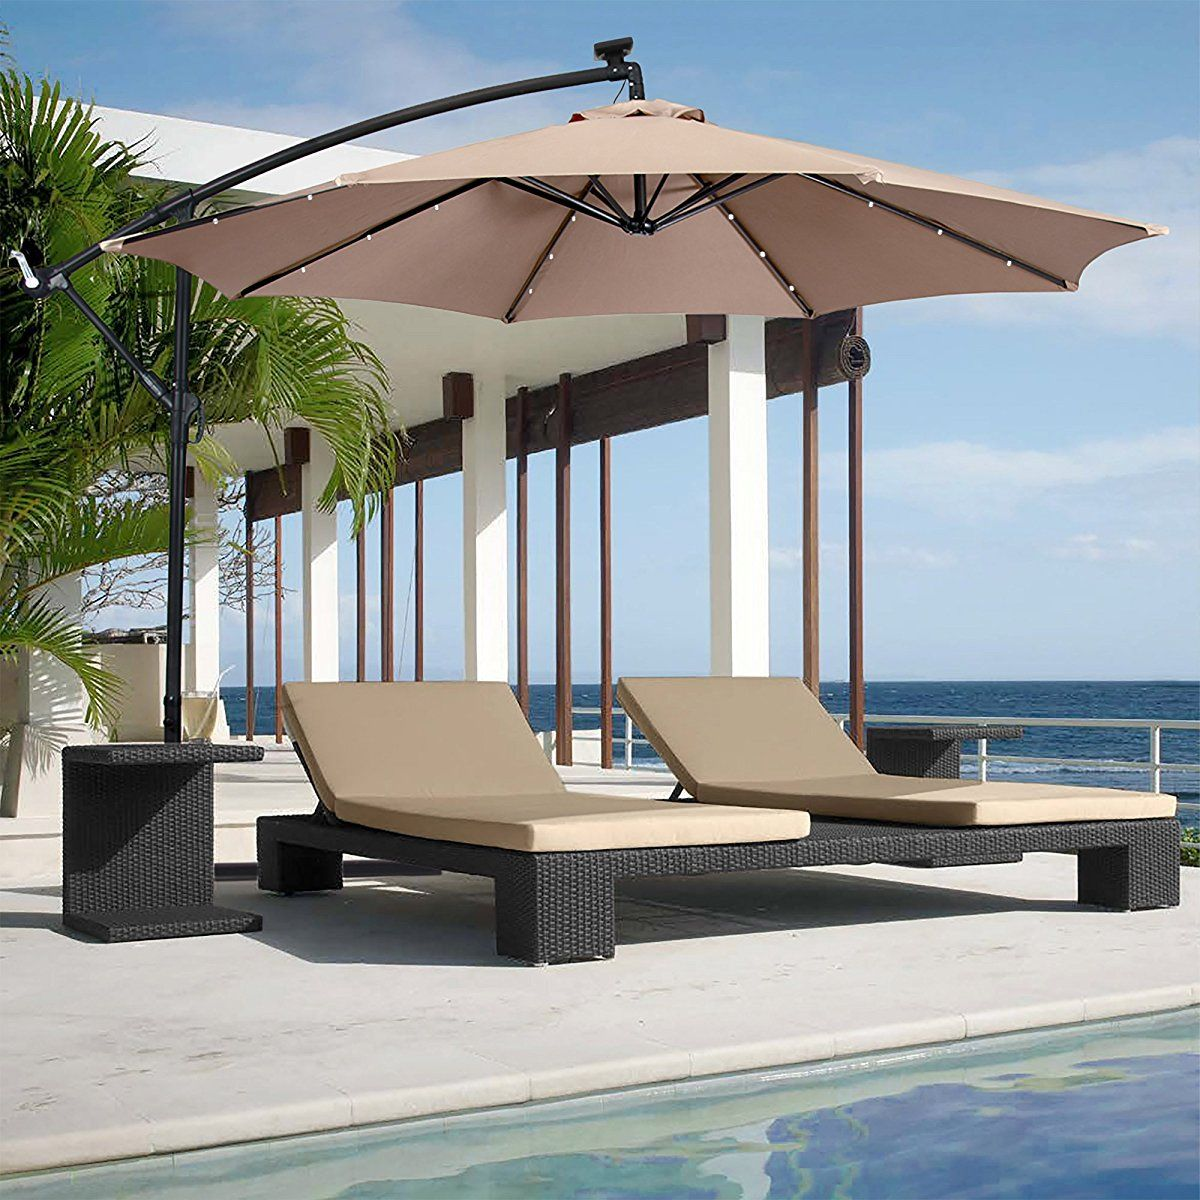 Best Choice Products 10ft Solar Led Patio Offset Umbrella W Easy Tilt Adjustment Tan Best Patio Umbrella Offset Patio Umbrella Patio Umbrellas